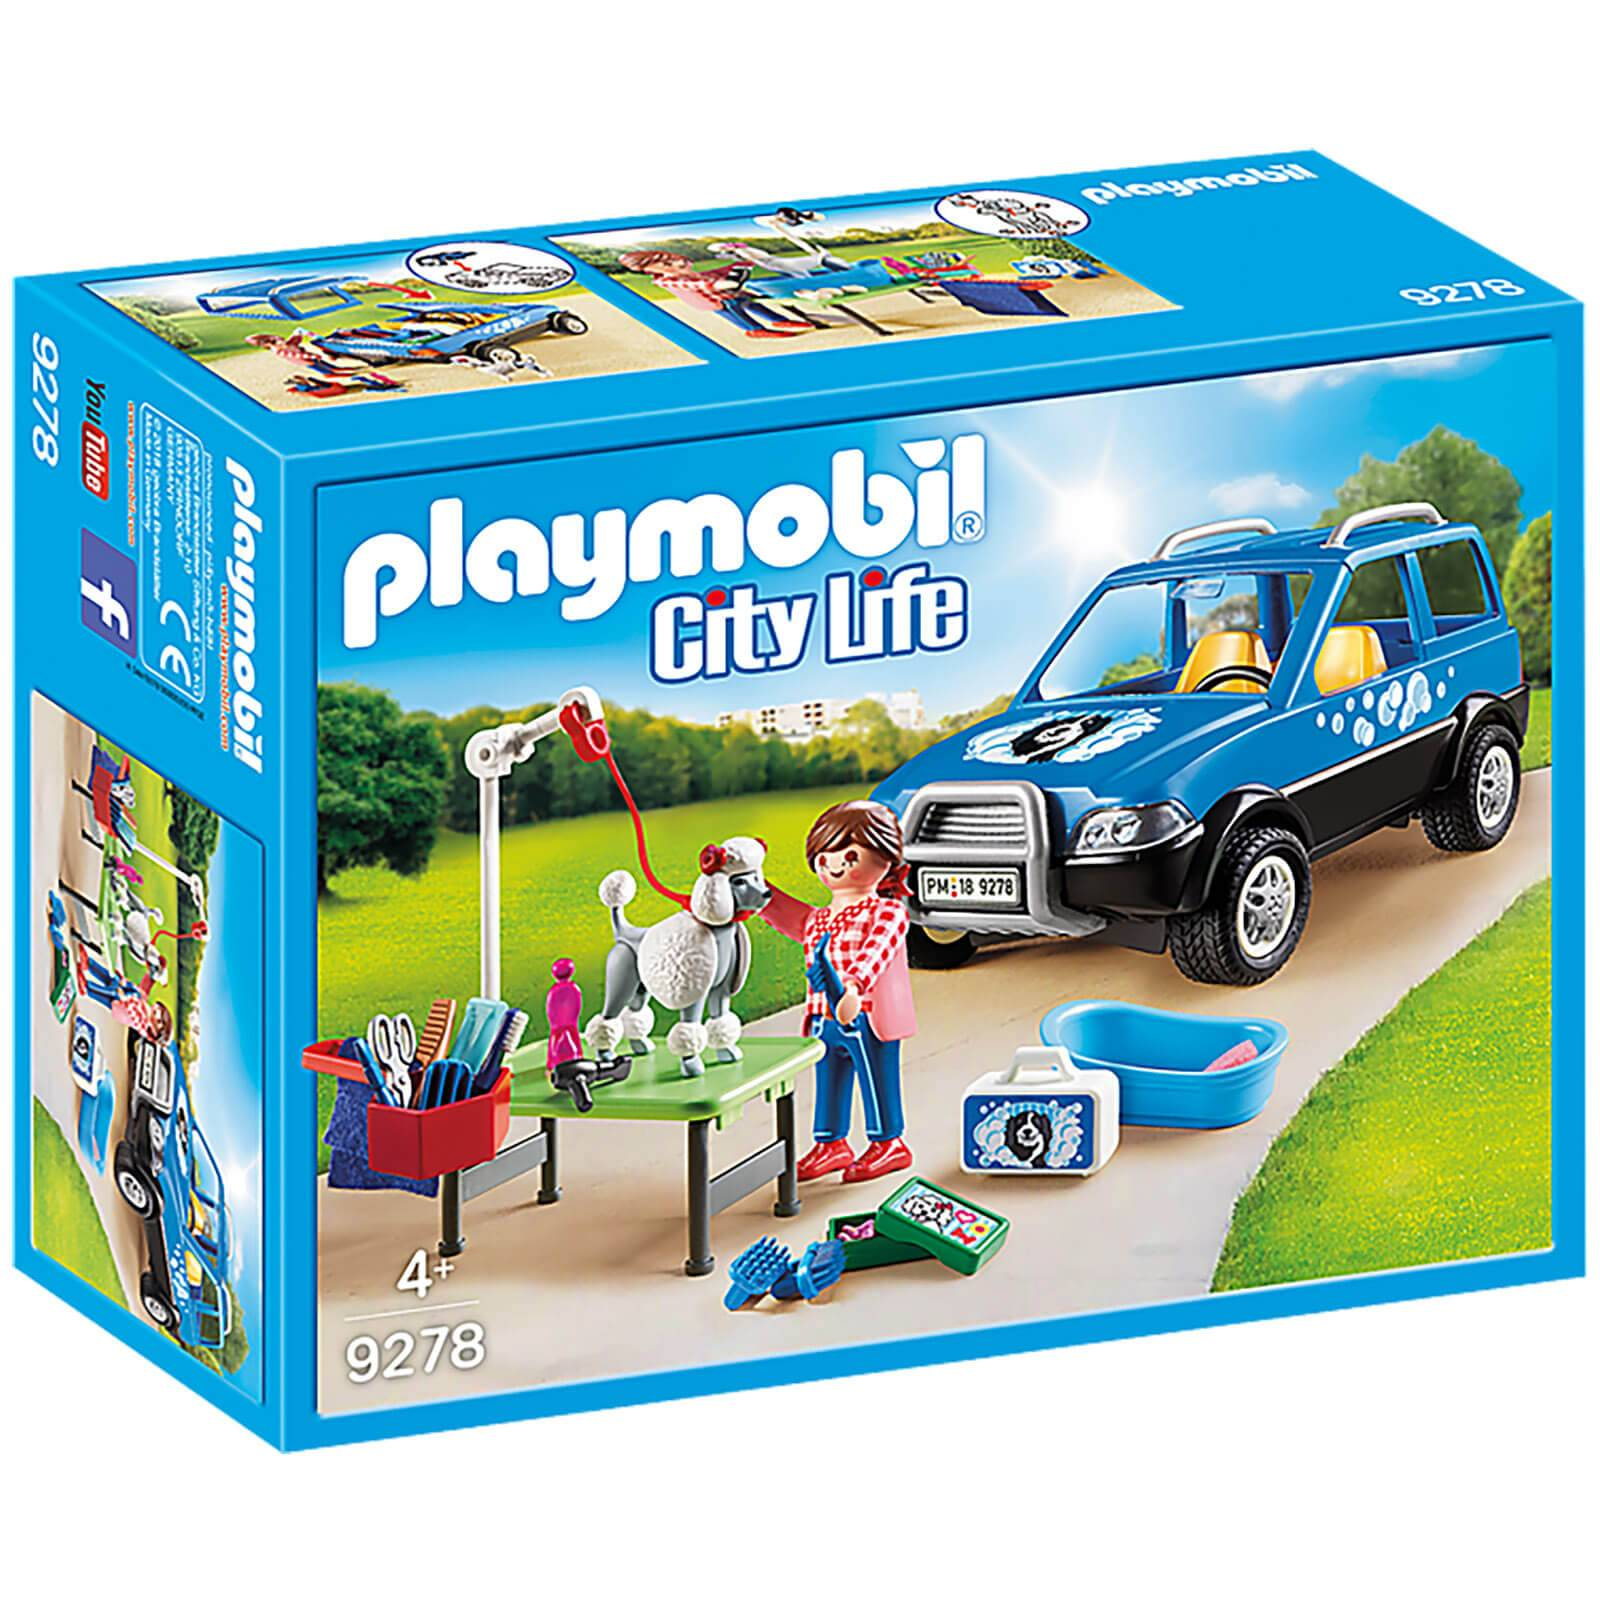 Playmobil City Life Mobile Pet Groomer with Removeable Roof (9278)